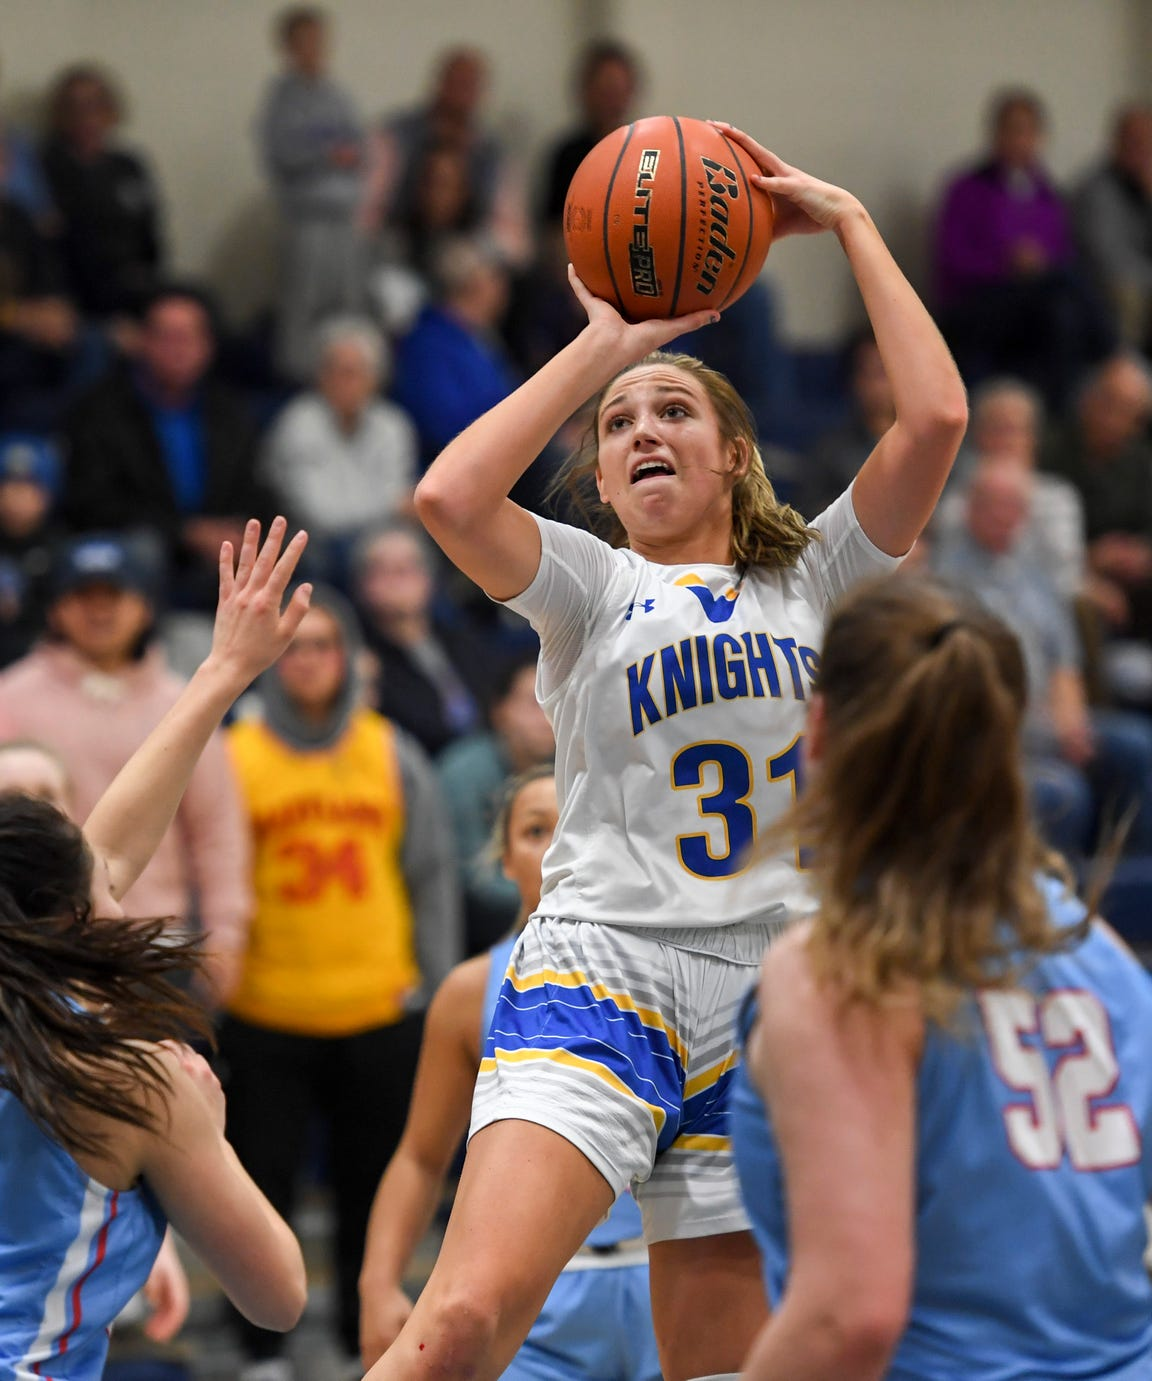 O'Gorman's Emma Ronsiek (31) goes up for a shot during the game against Lincoln on Friday, Jan. 31, 2020 at the O'Gorman High School.